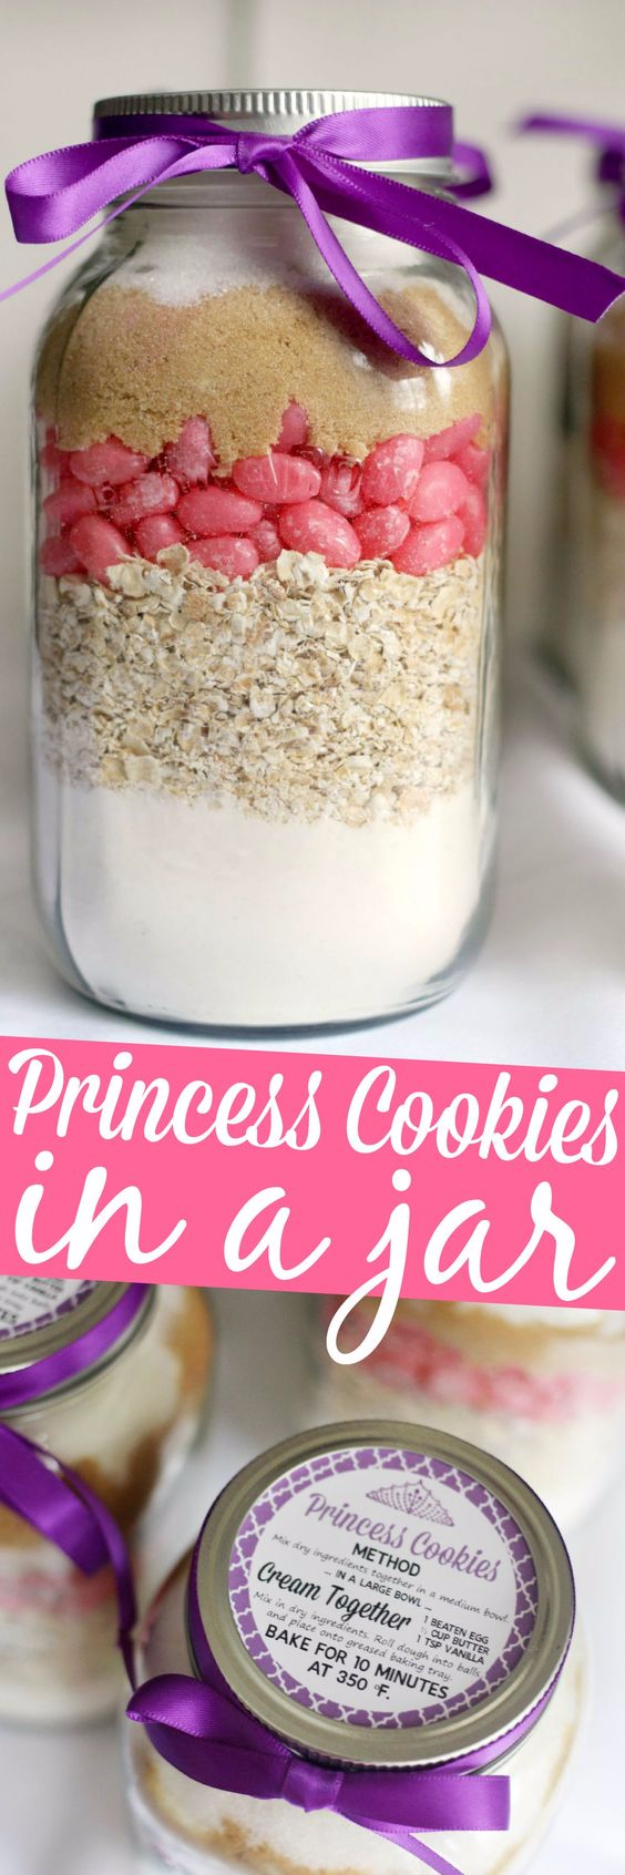 Best Mason Jar Cookies - Princess Cookies In A Jar - Mason Jar Cookie Recipe Mix for Cute Decorated DIY Gifts - Easy Chocolate Chip Recipes, Christmas Presents and Wedding Favors in Mason Jars - Fun Ideas for DIY Parties and Cheap Last Minute Gift Ideas for Friends #diygifts #masonjarcrafts